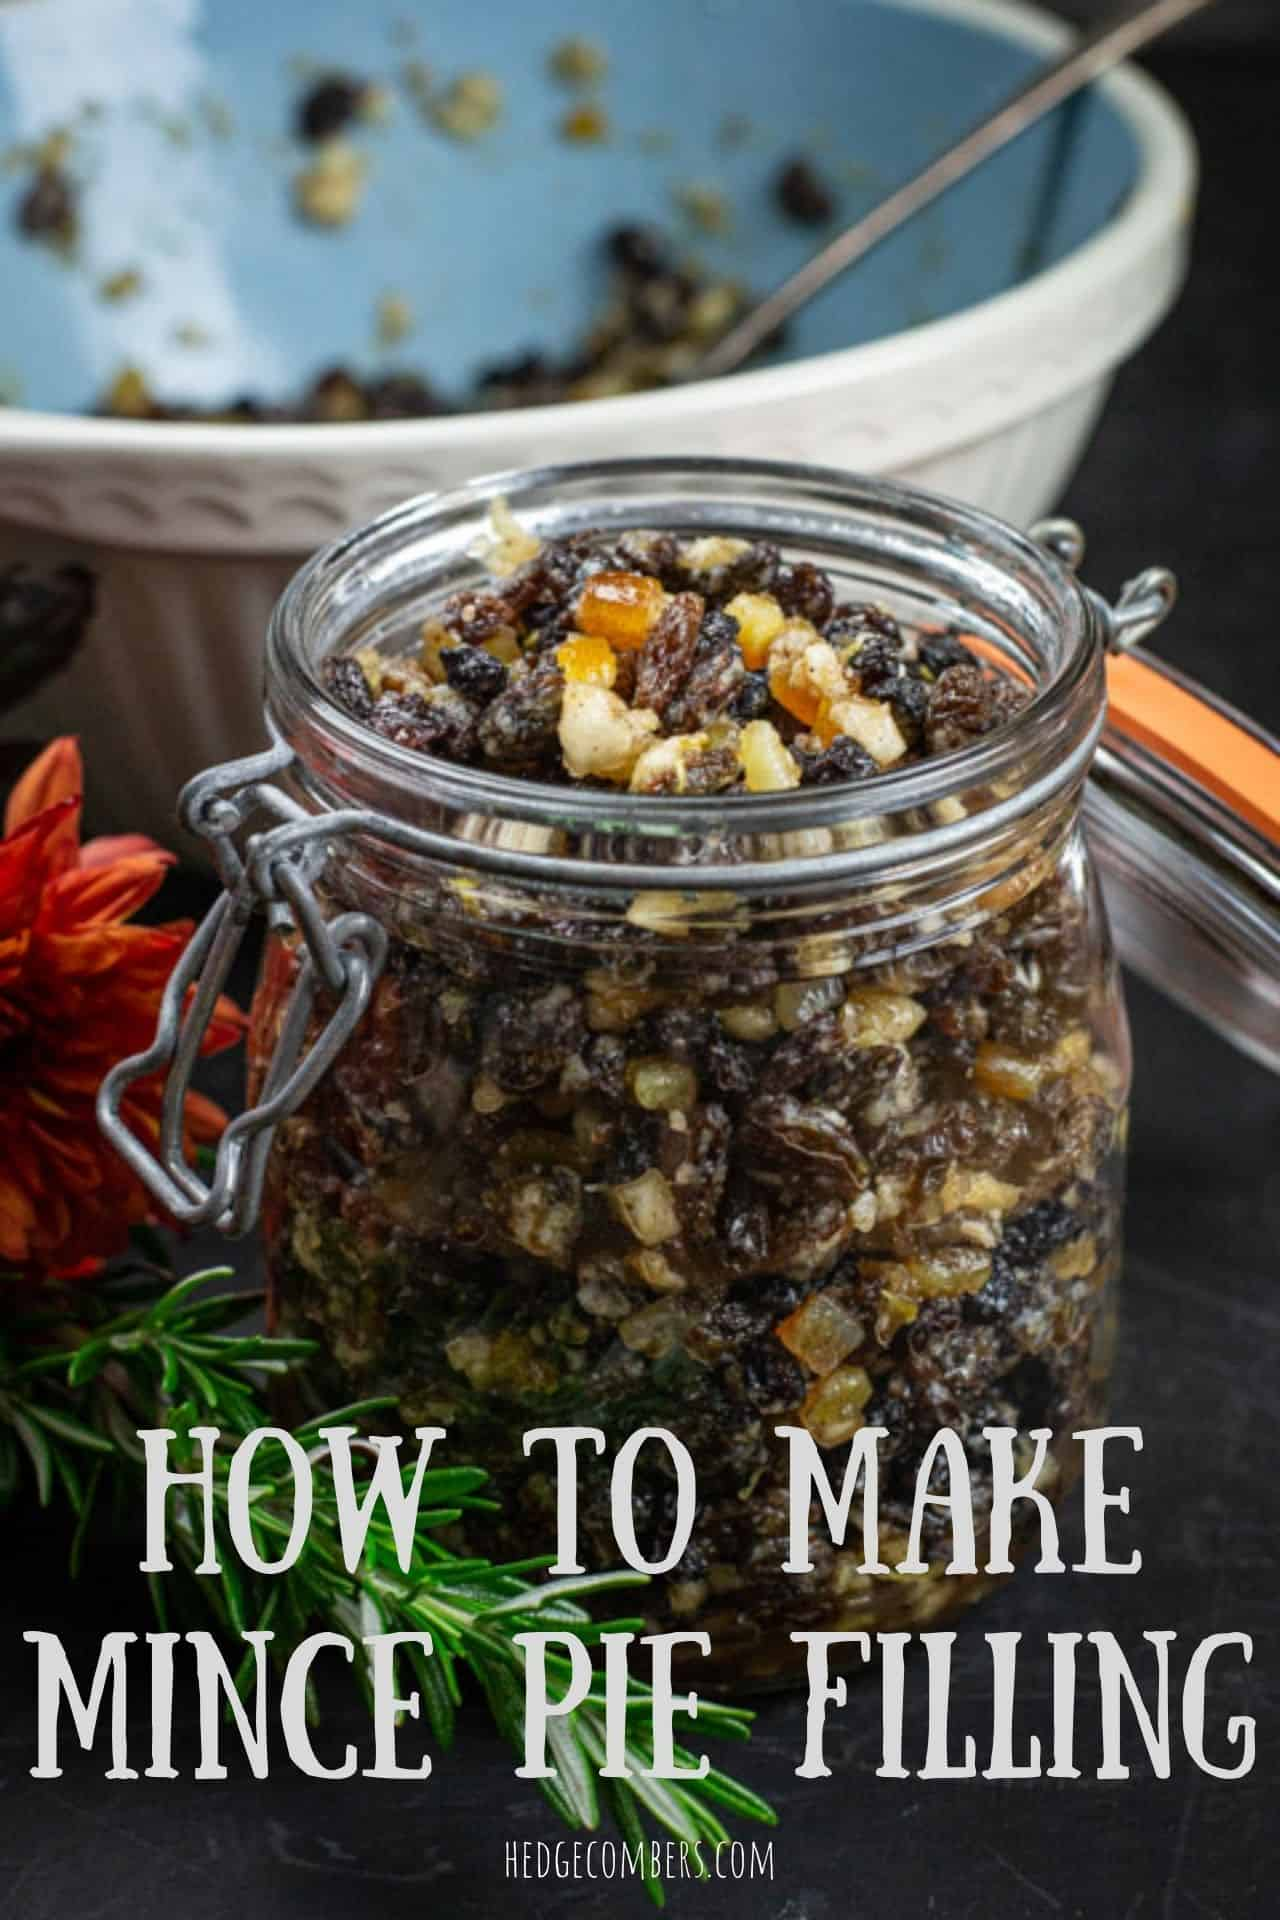 glass jar filled with fruity mincemeat filling on a kitchen counter with baking mess around